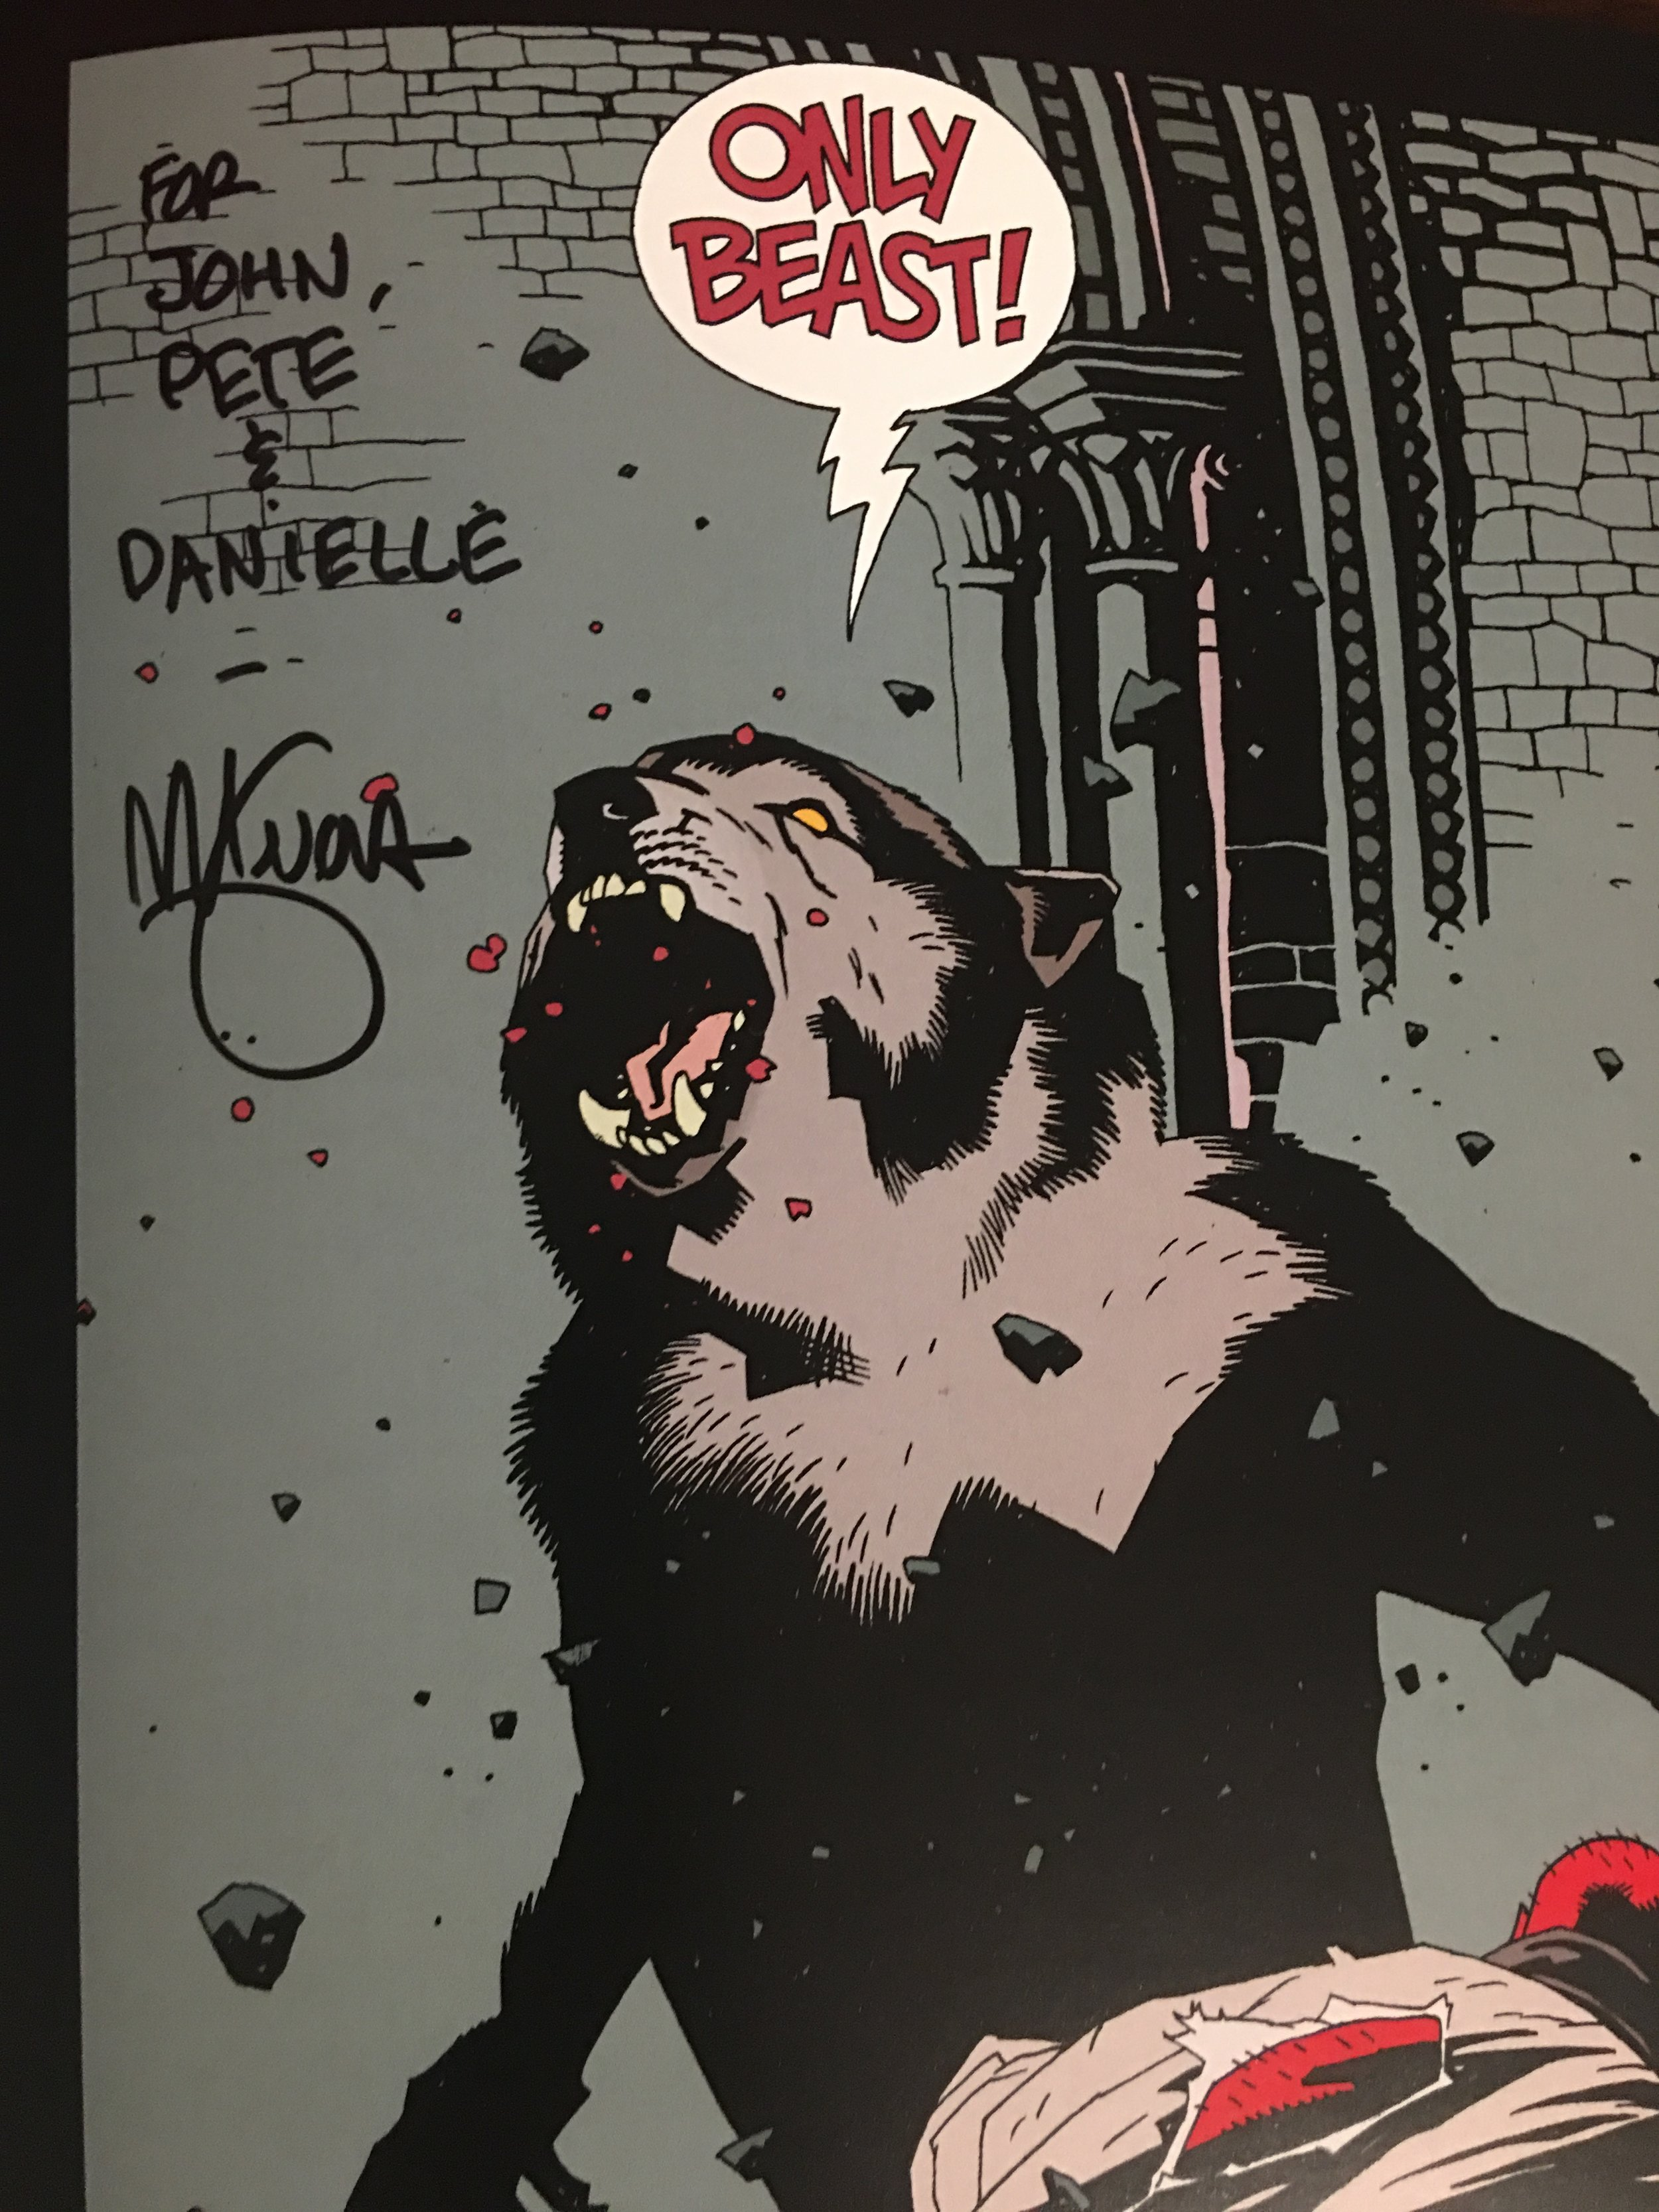 Co-Signed, you might say  Credit and Signature: Mike Mignola